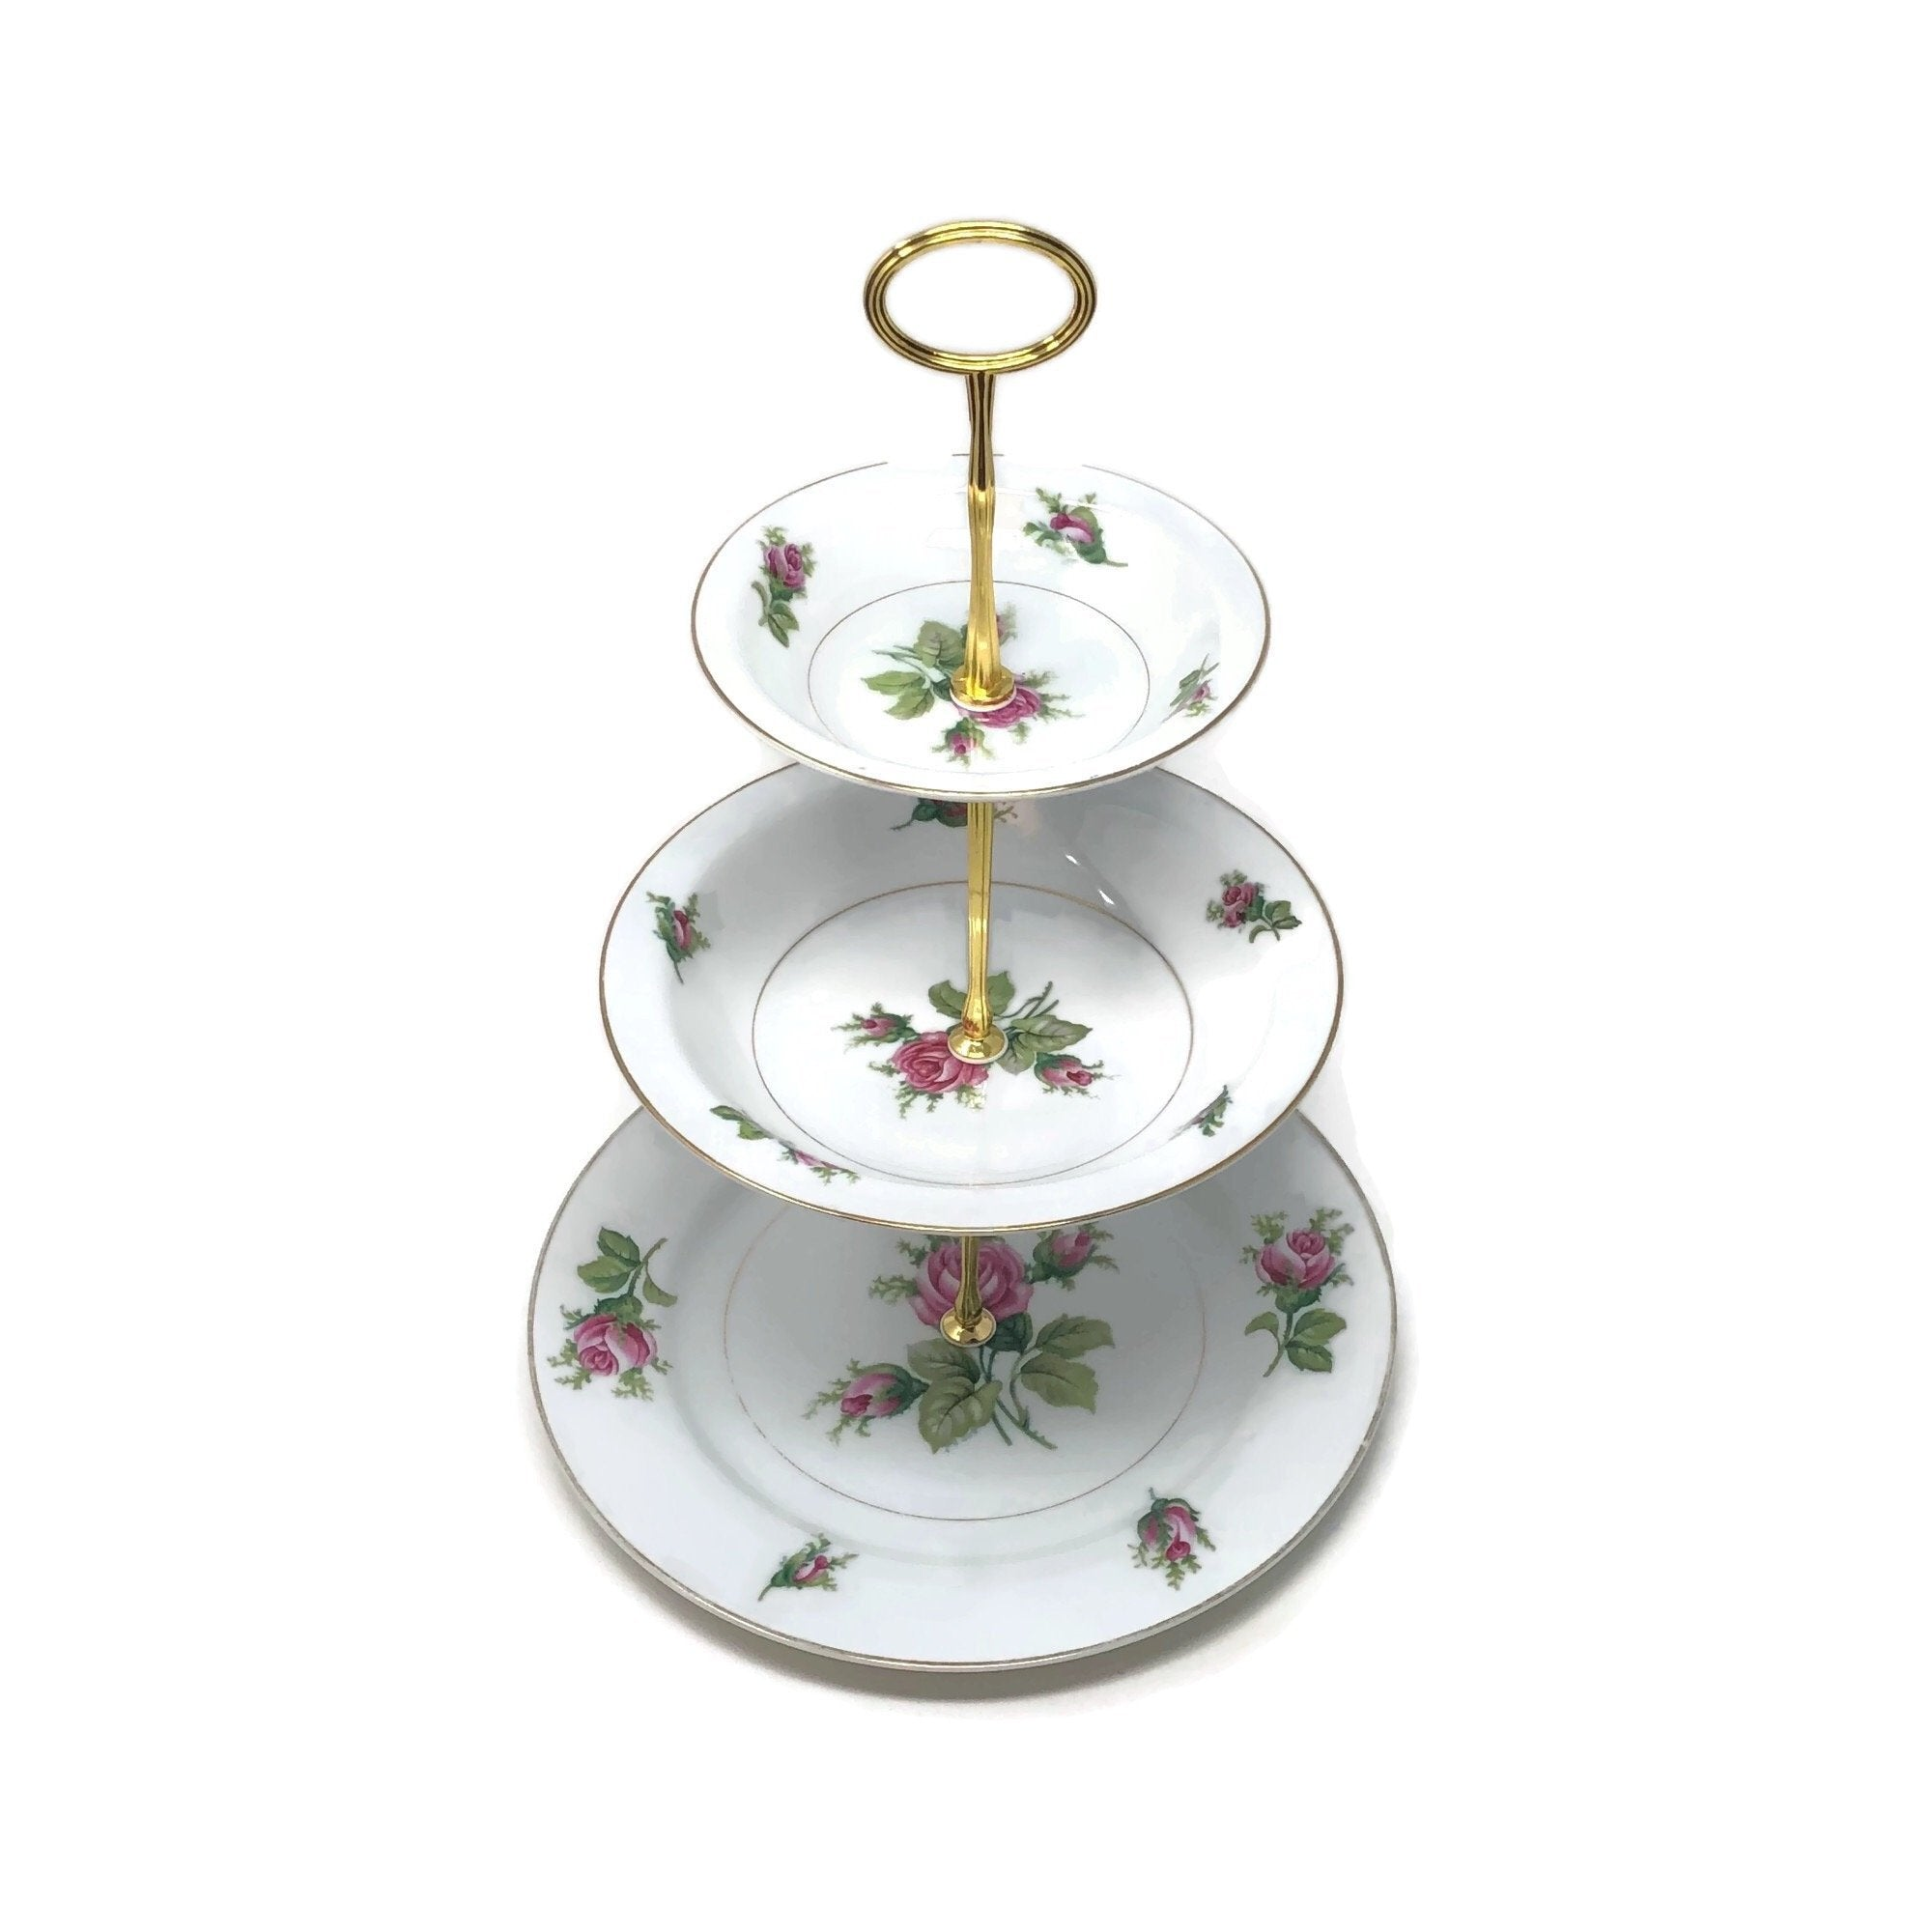 Roseverte Kyoto: 3-Tier | The Brooklyn Teacup - The Brooklyn Teacup